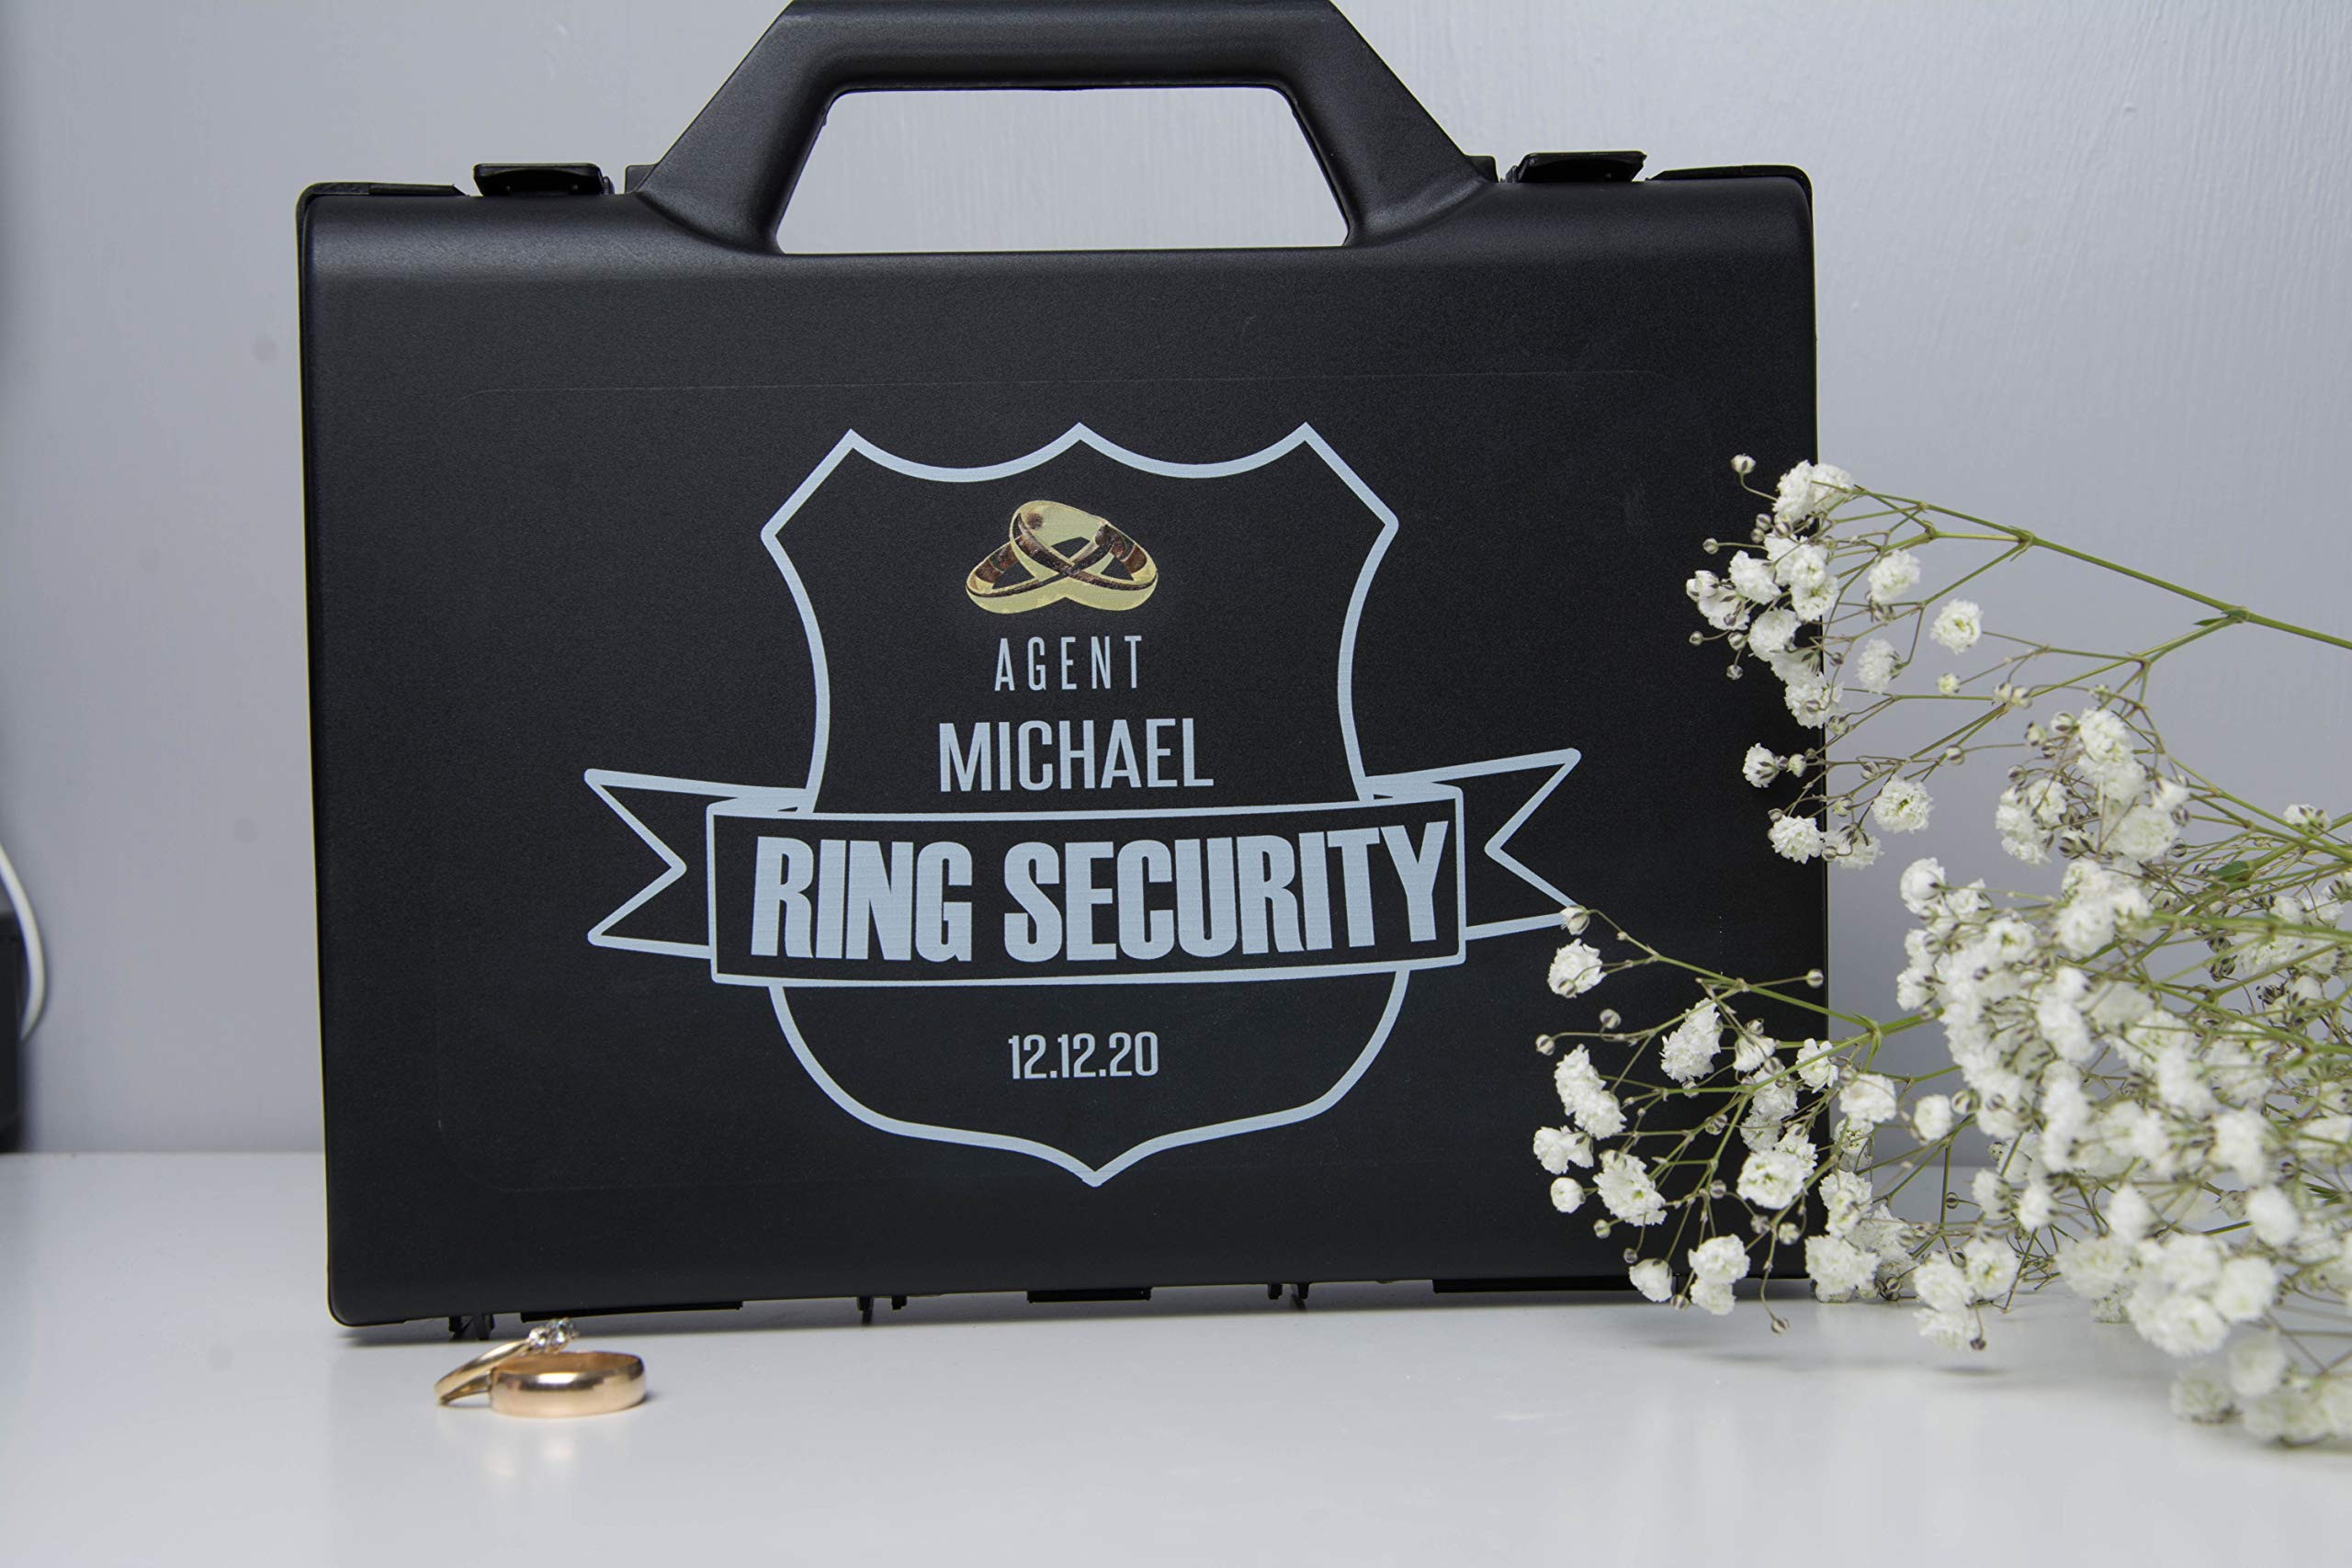 Personalized Ring Security Case - Ring Bearer Case Box - Agent - Wedding - Pillow Alternative by Classy Hen